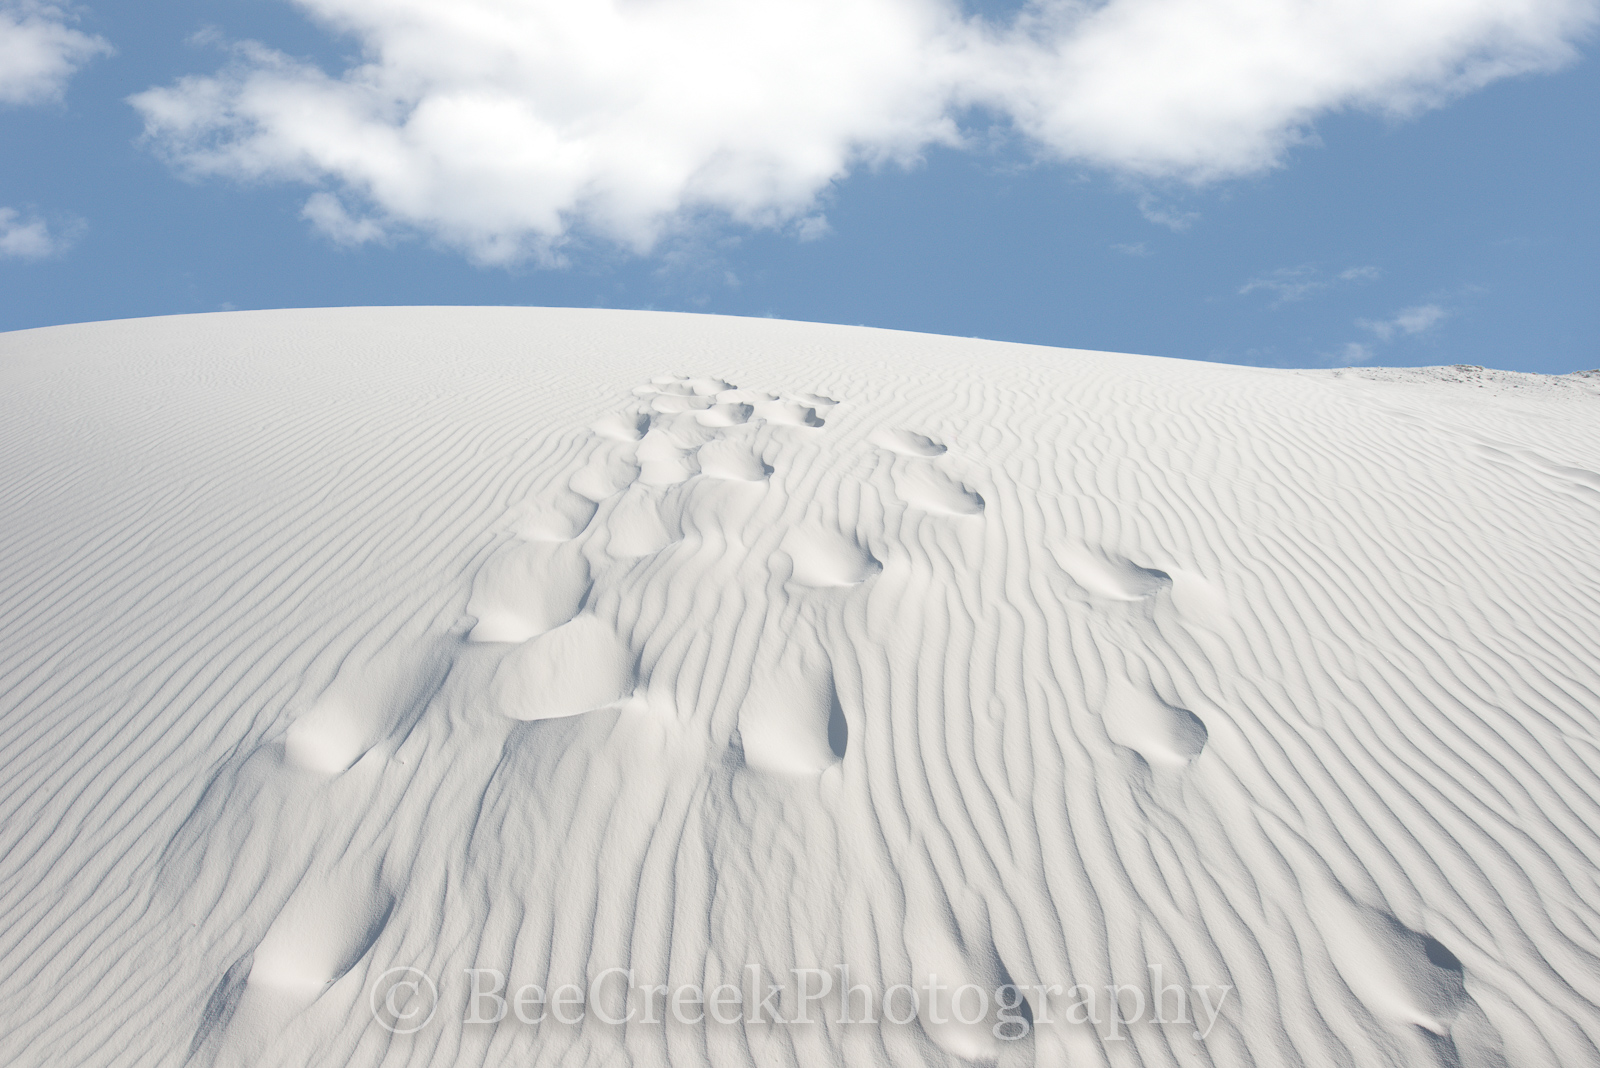 White Sands, Alamagorda nm, New Mexico, New Mexico Parks, White Sand National Monument, beautiful photos of white sands, dunes, flow of sand, foot steps in the sands, gypsum, images of White Sands, ma, photo